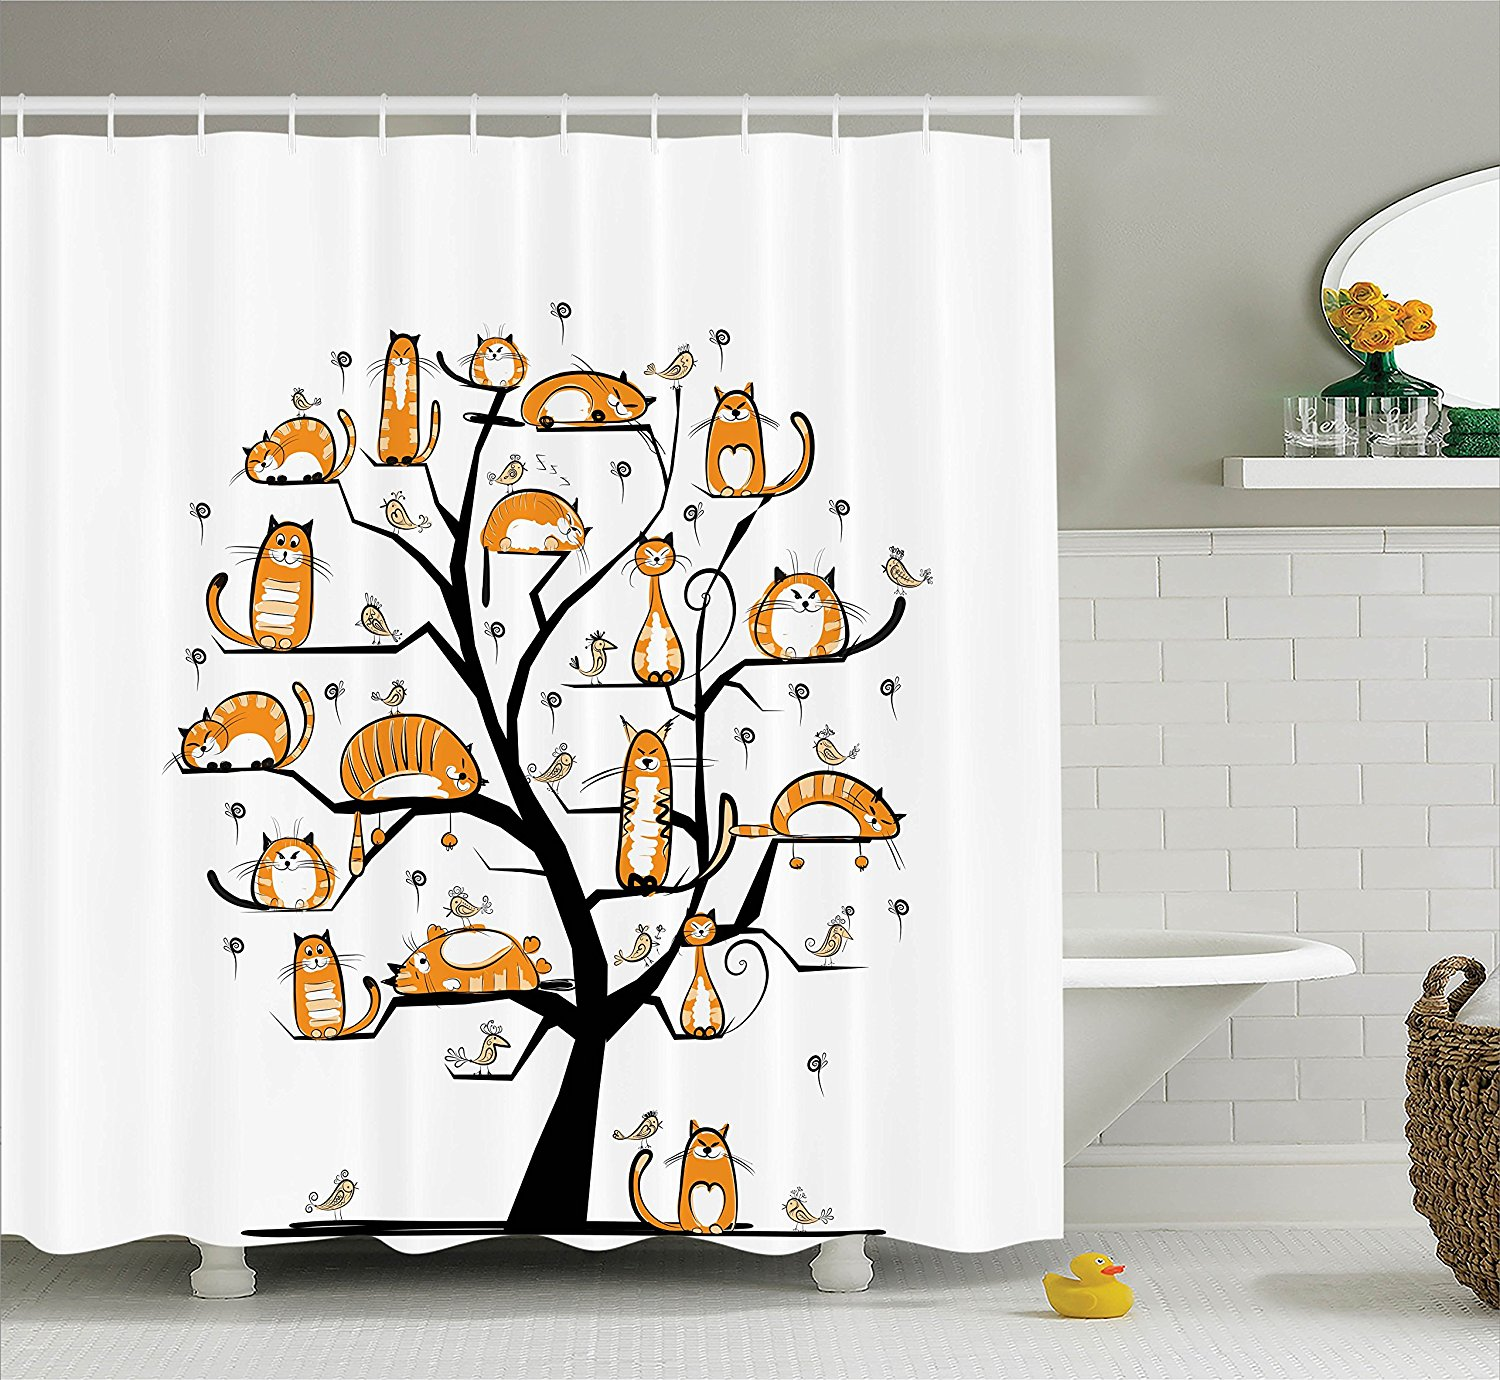 WARM TOUR Cat Family Tree With Birds Shower Curtain Bathroom Products Creative Polyester Bath 72X72 In Curtains From Home